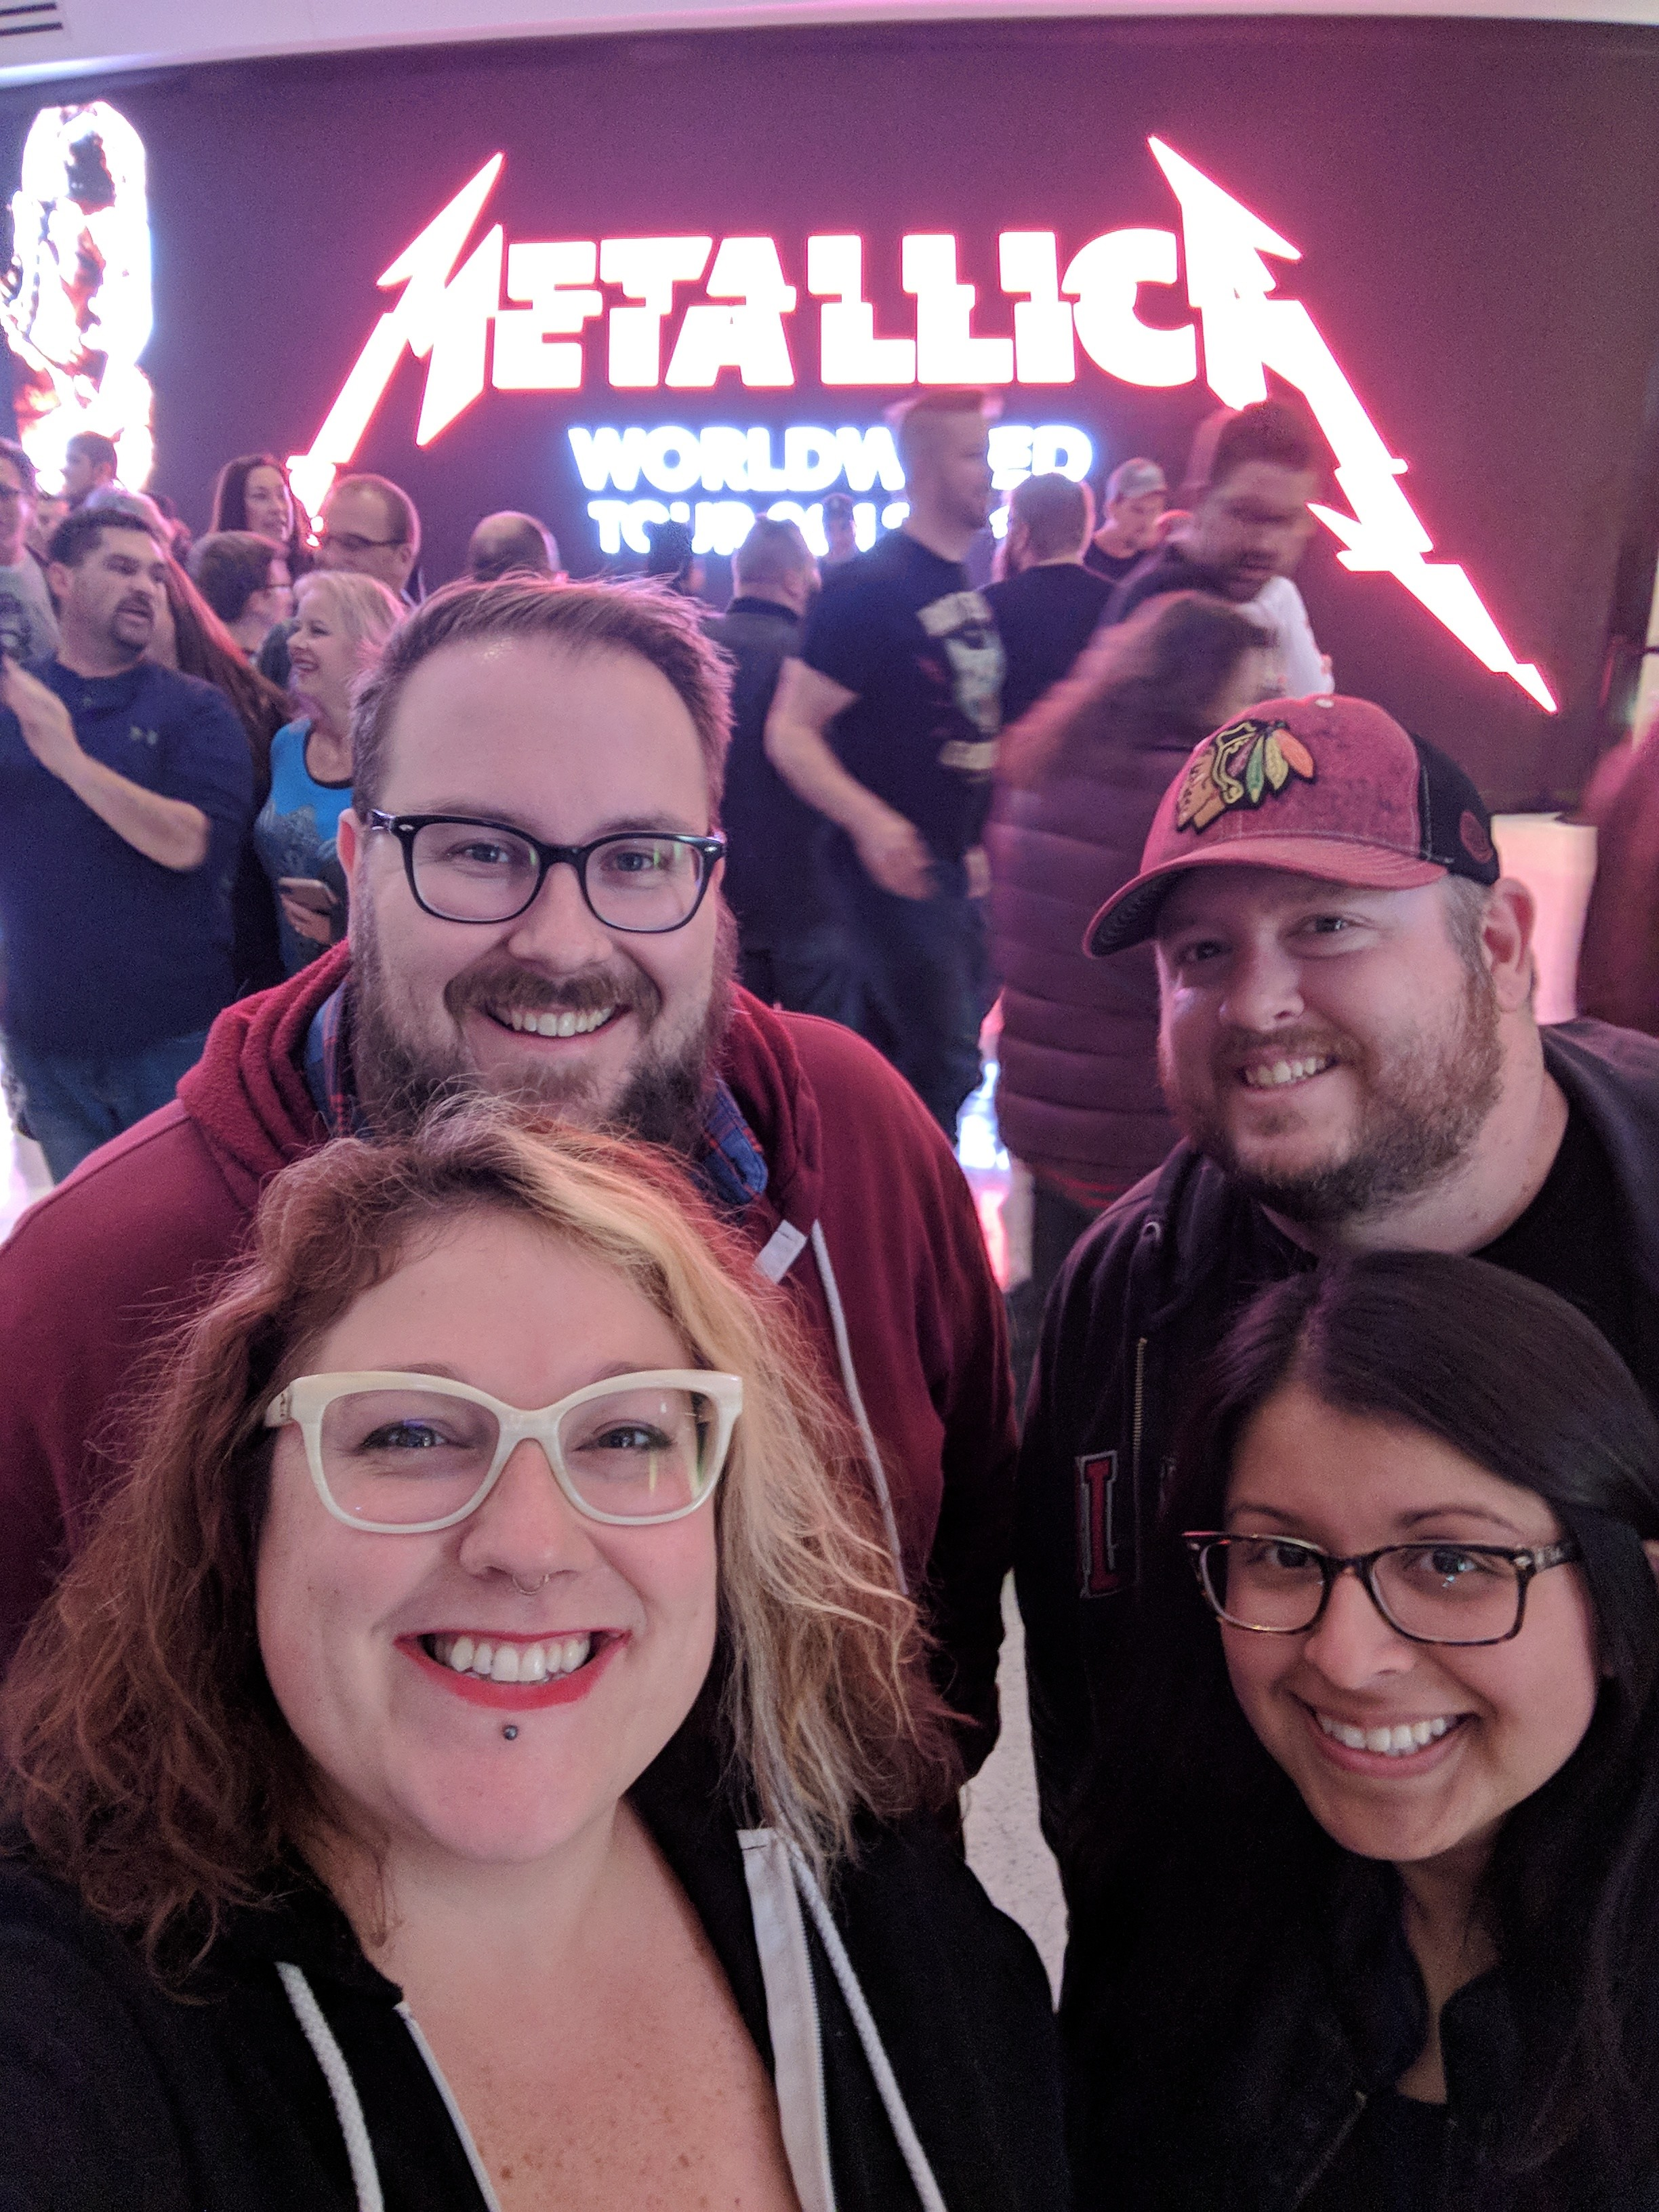 Steve, Kevin, Janet, and Sara at the Fiserv to see METALLICA!